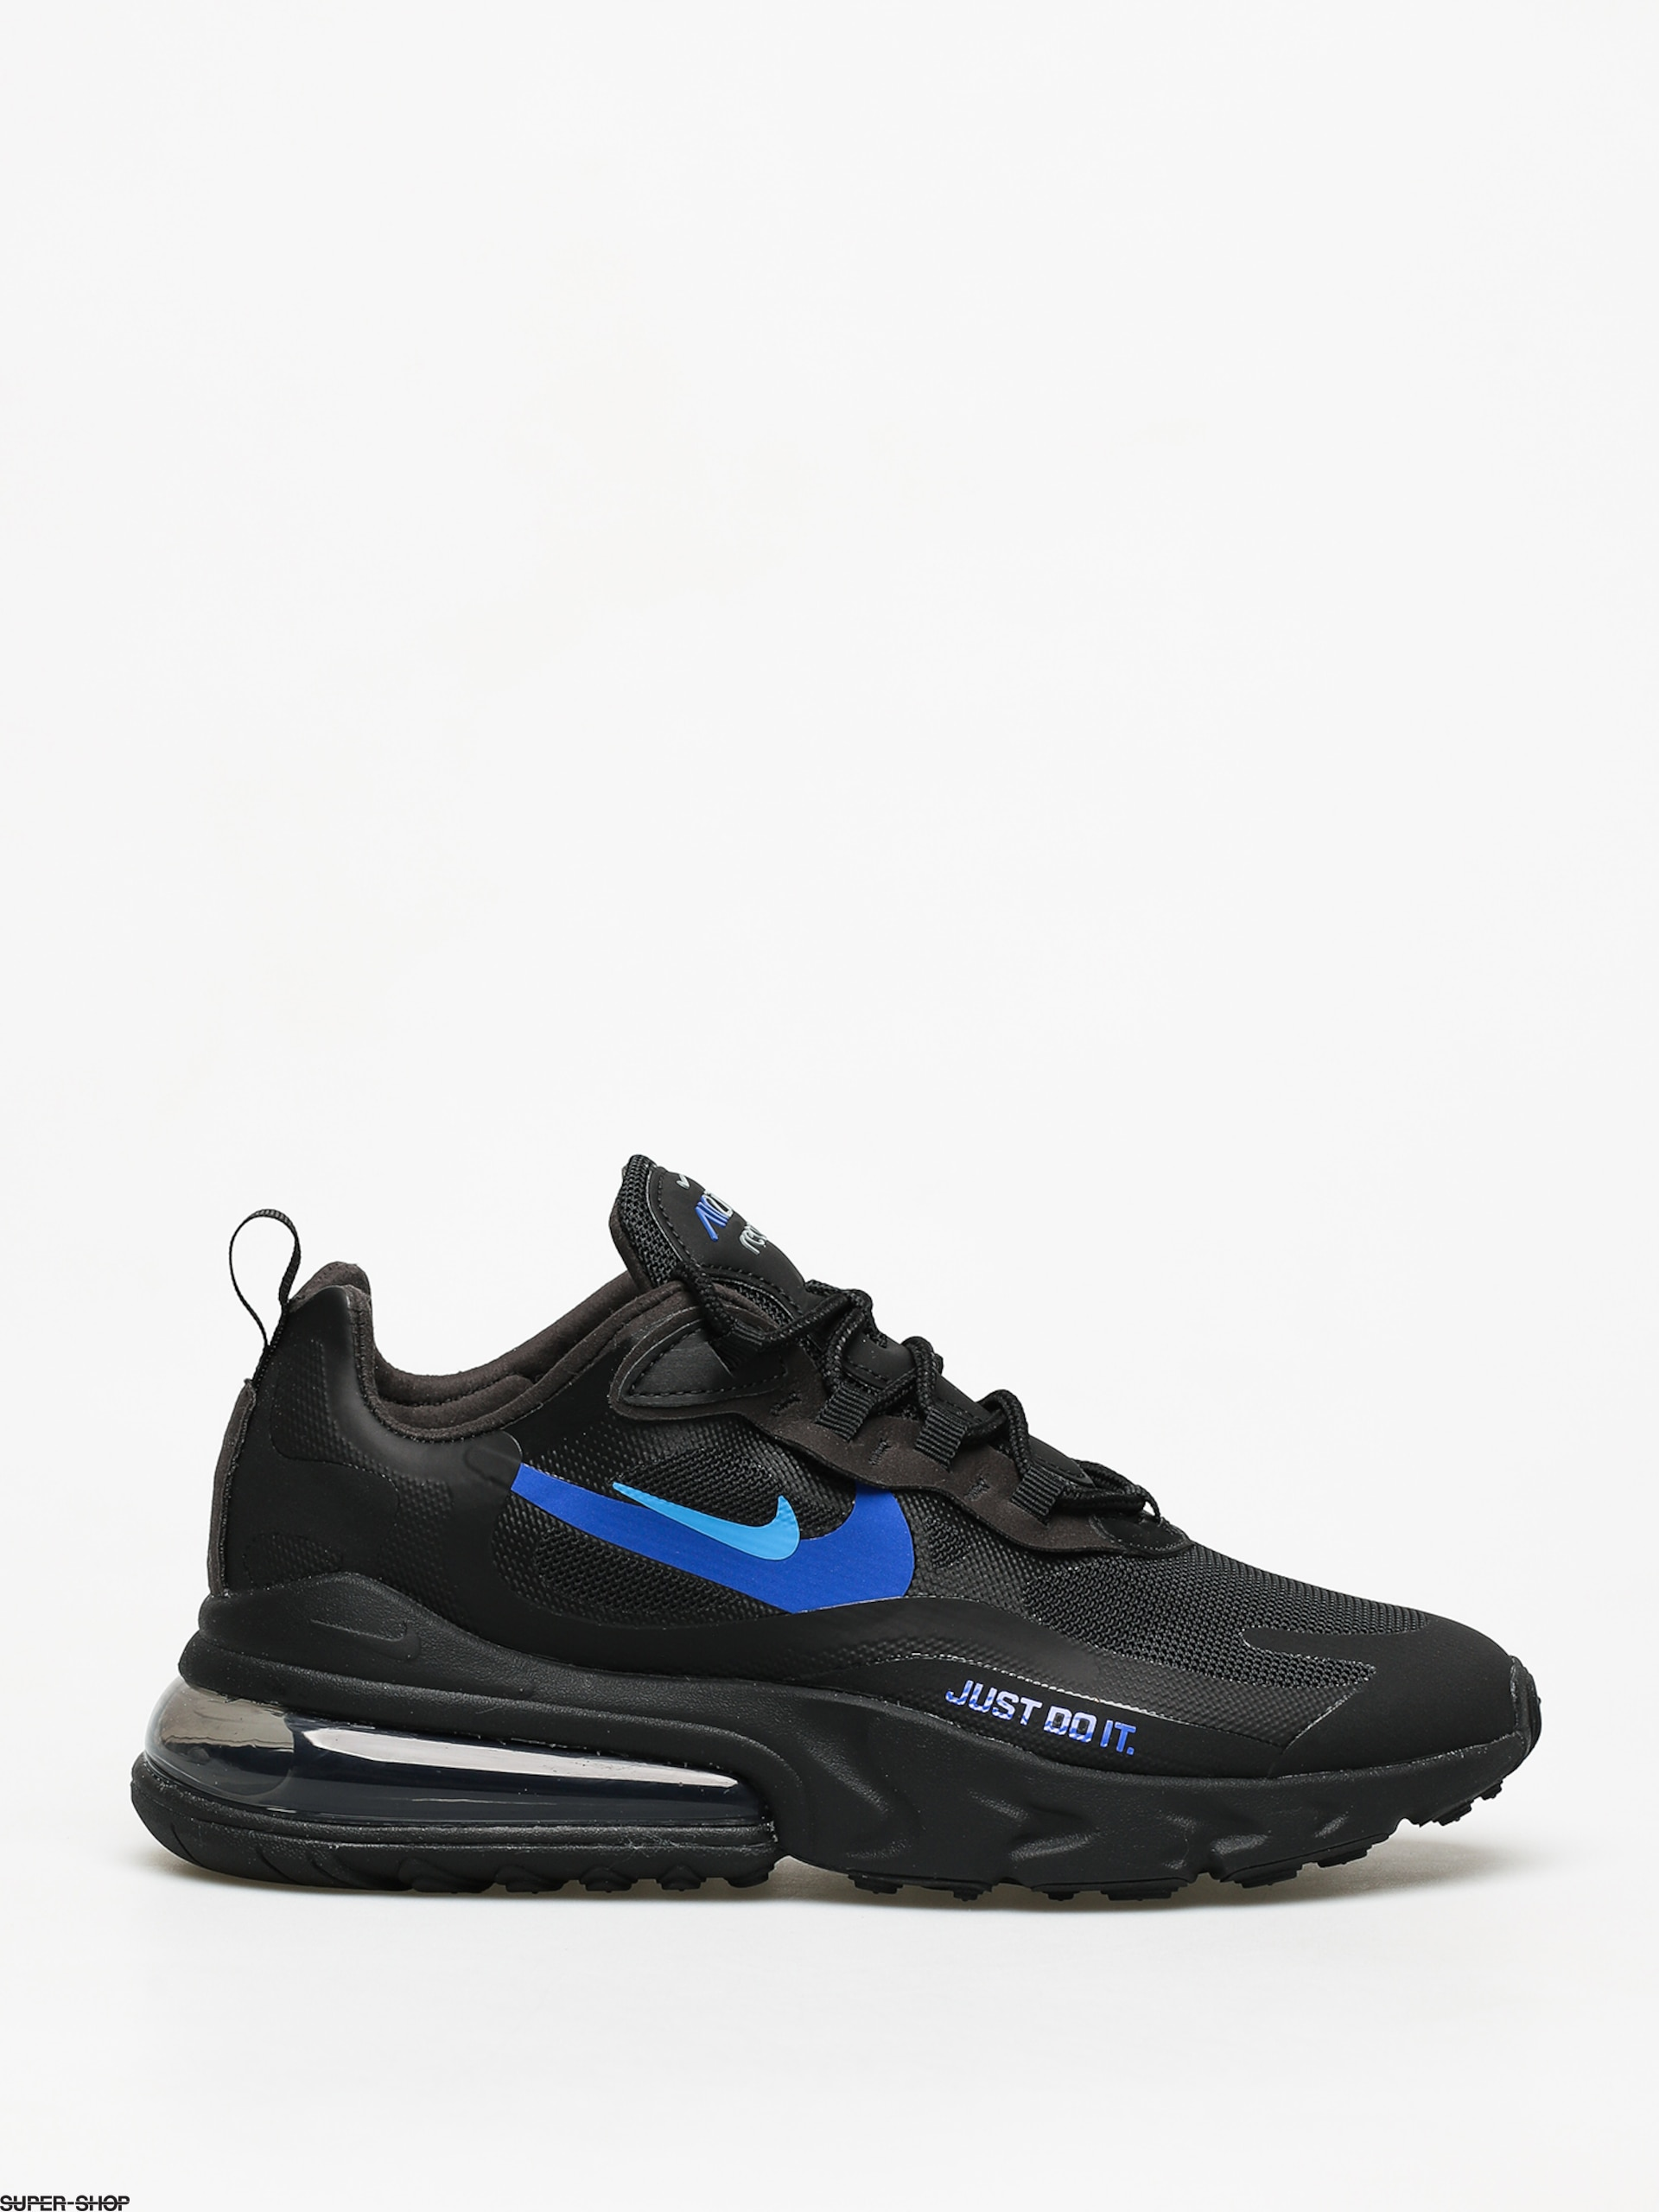 correr Descompostura cartucho  Nike Air Max 270 React Shoes (black/blue hero hyper royal cool grey)